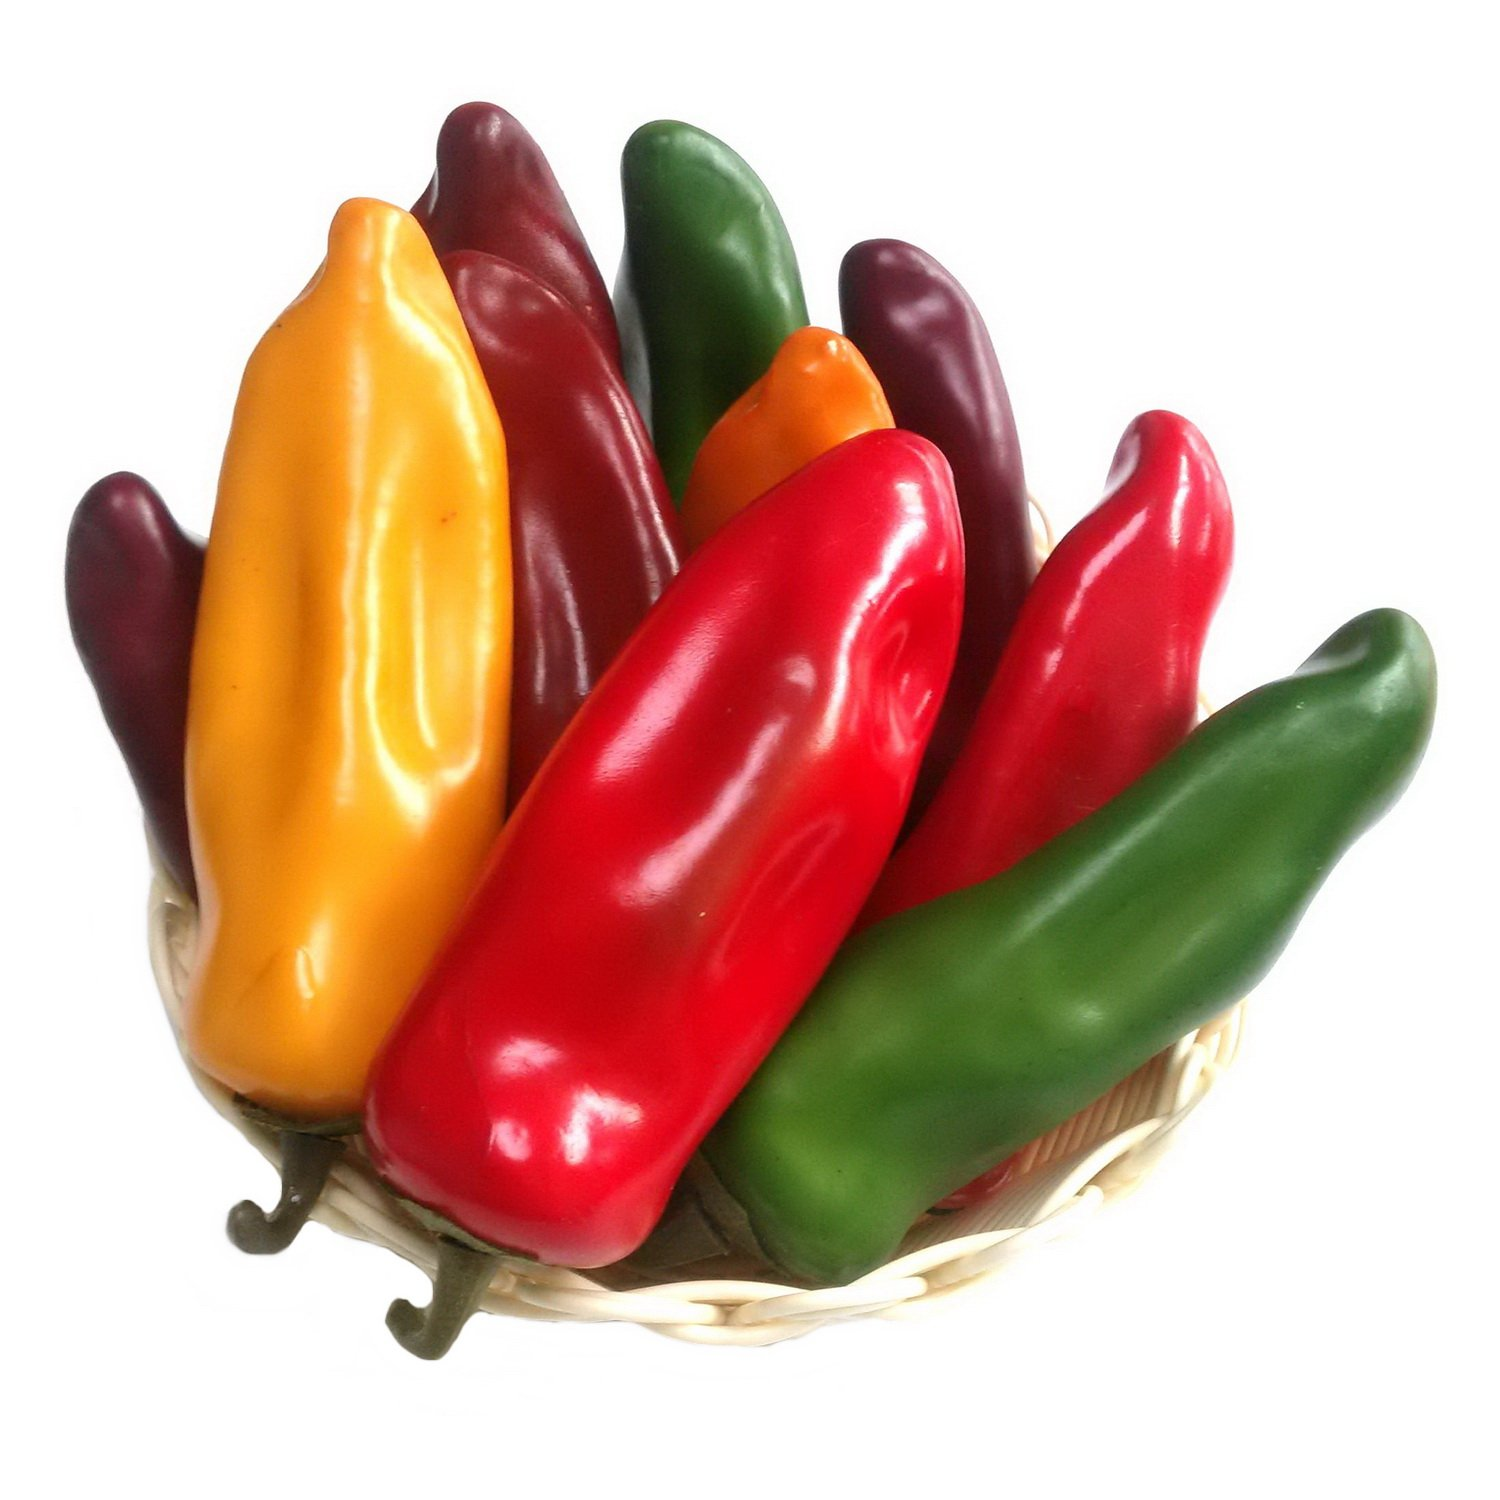 Gresorth 10pcs Artificial Lifelike Chili Pepper Decor Fake Fruit Home Party Festival Decoration Props